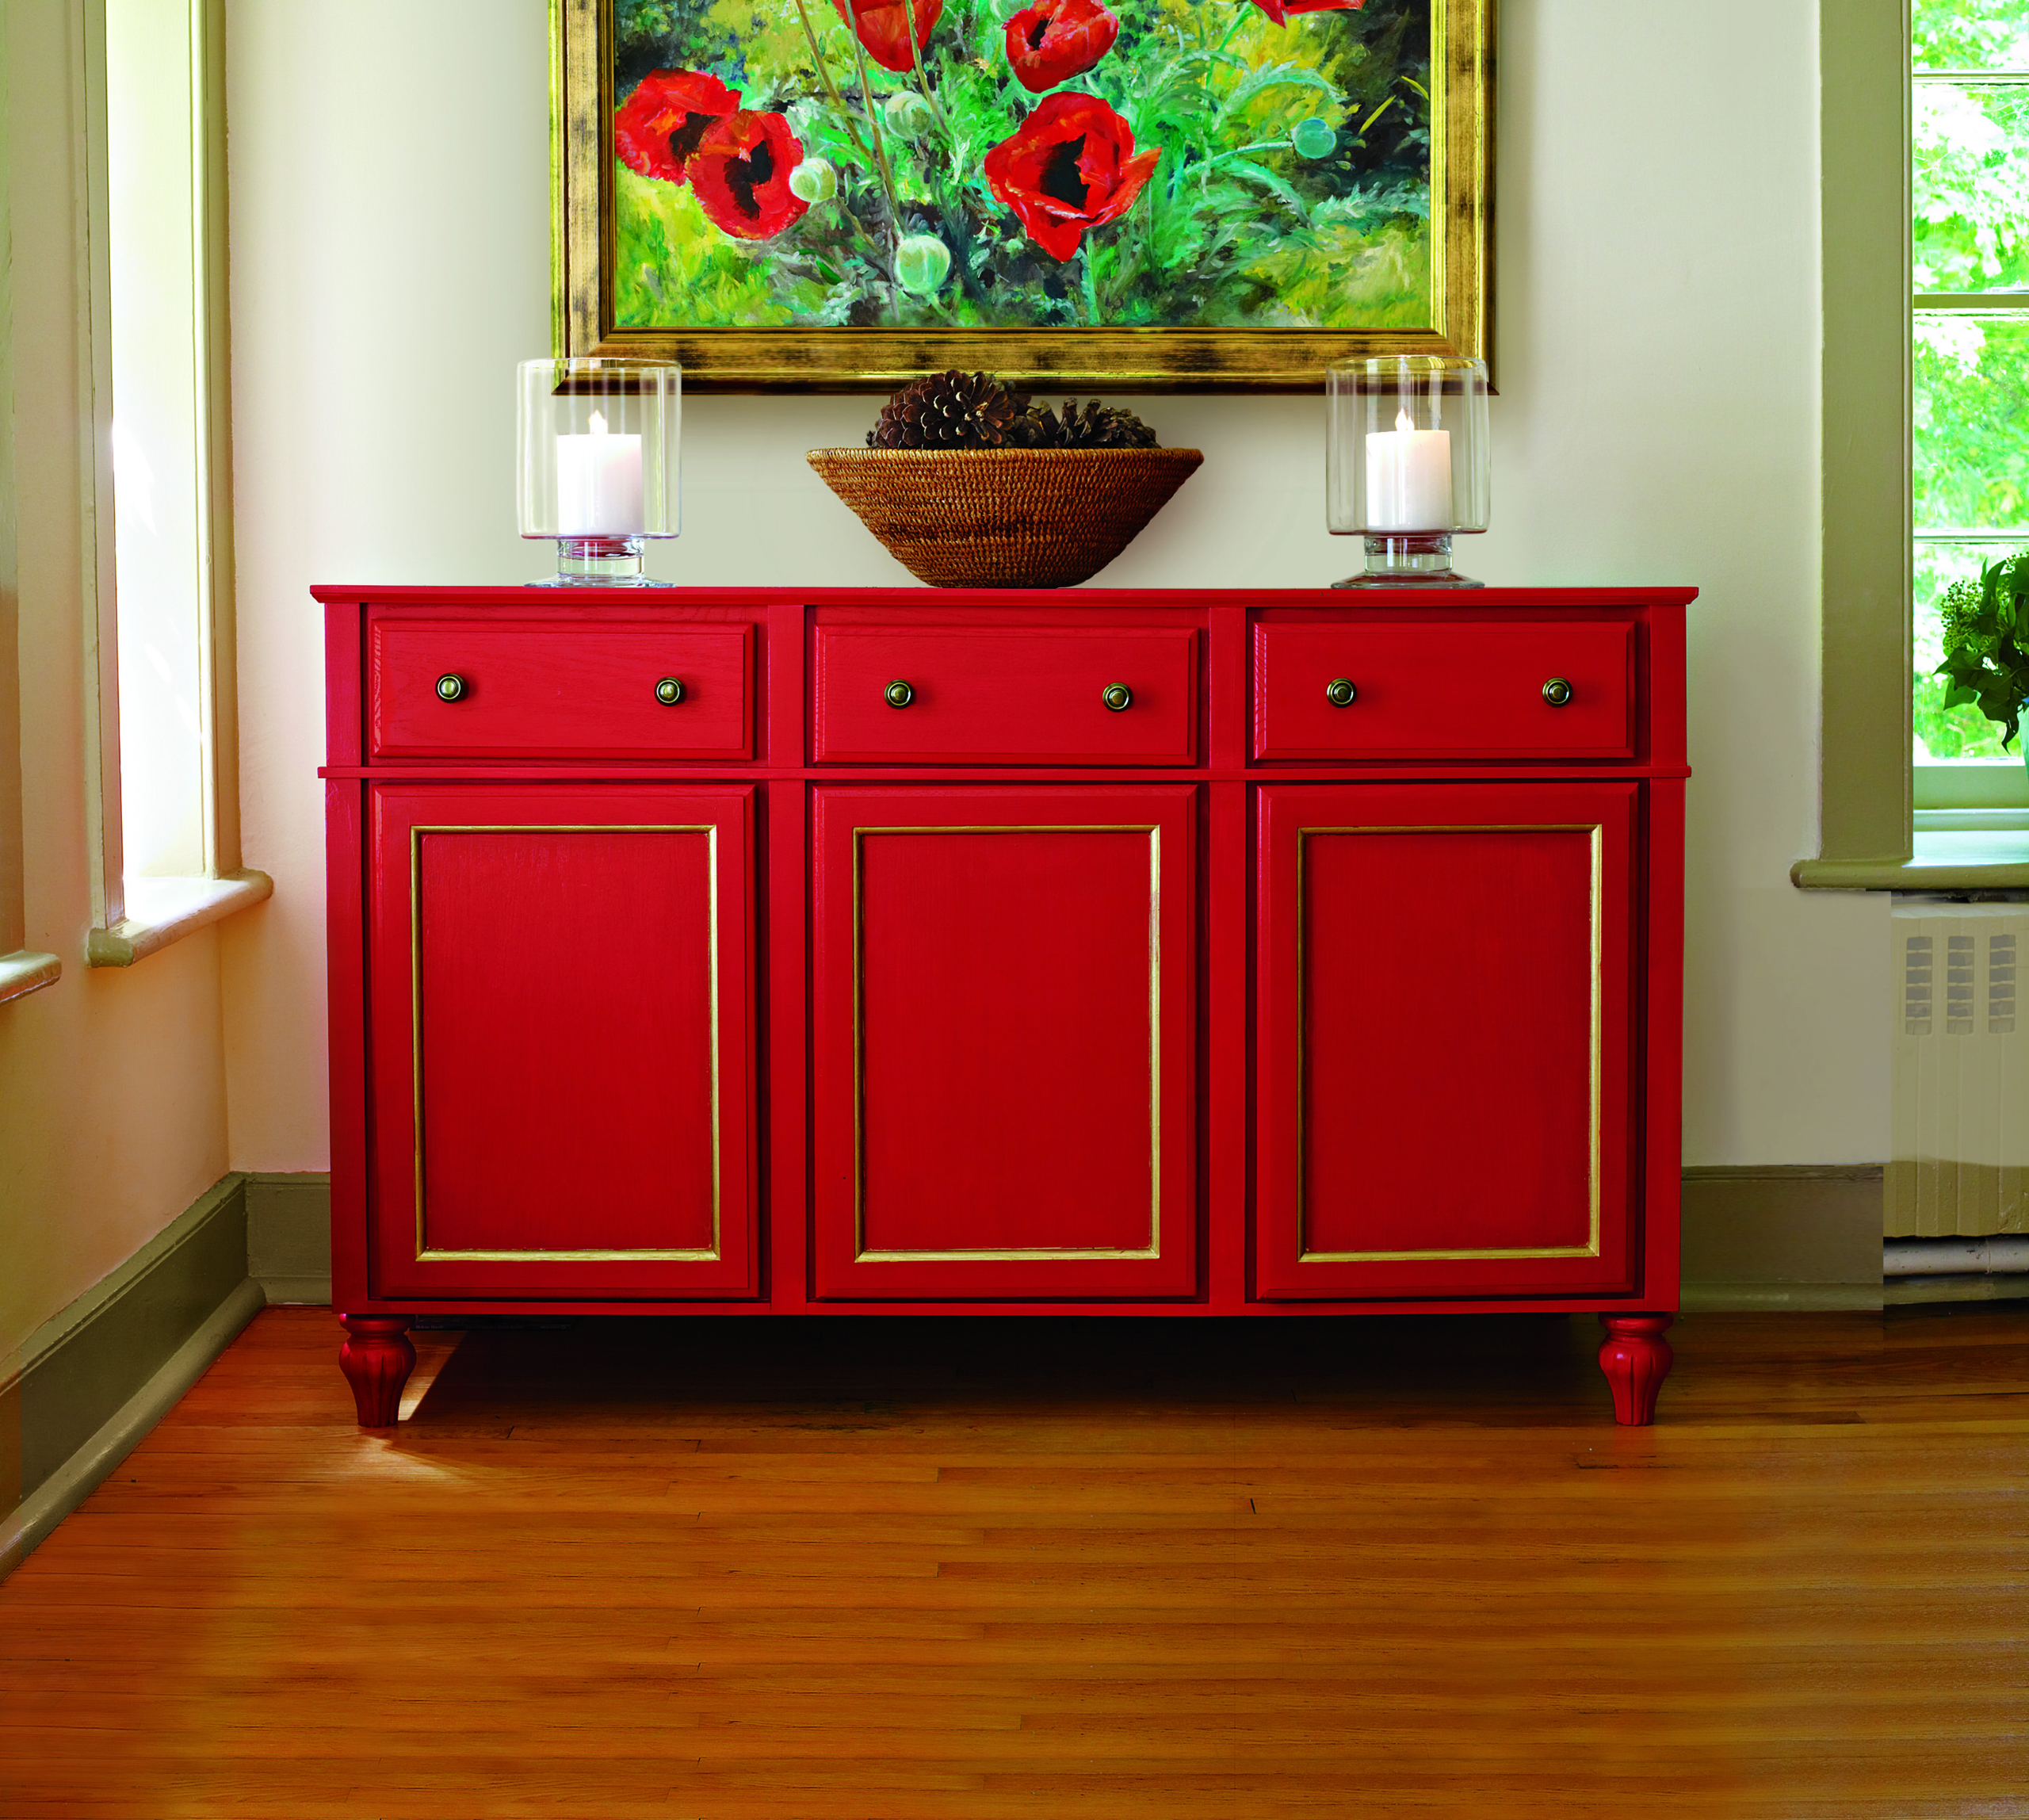 Orange Cabinets 4. Red Buffet ...